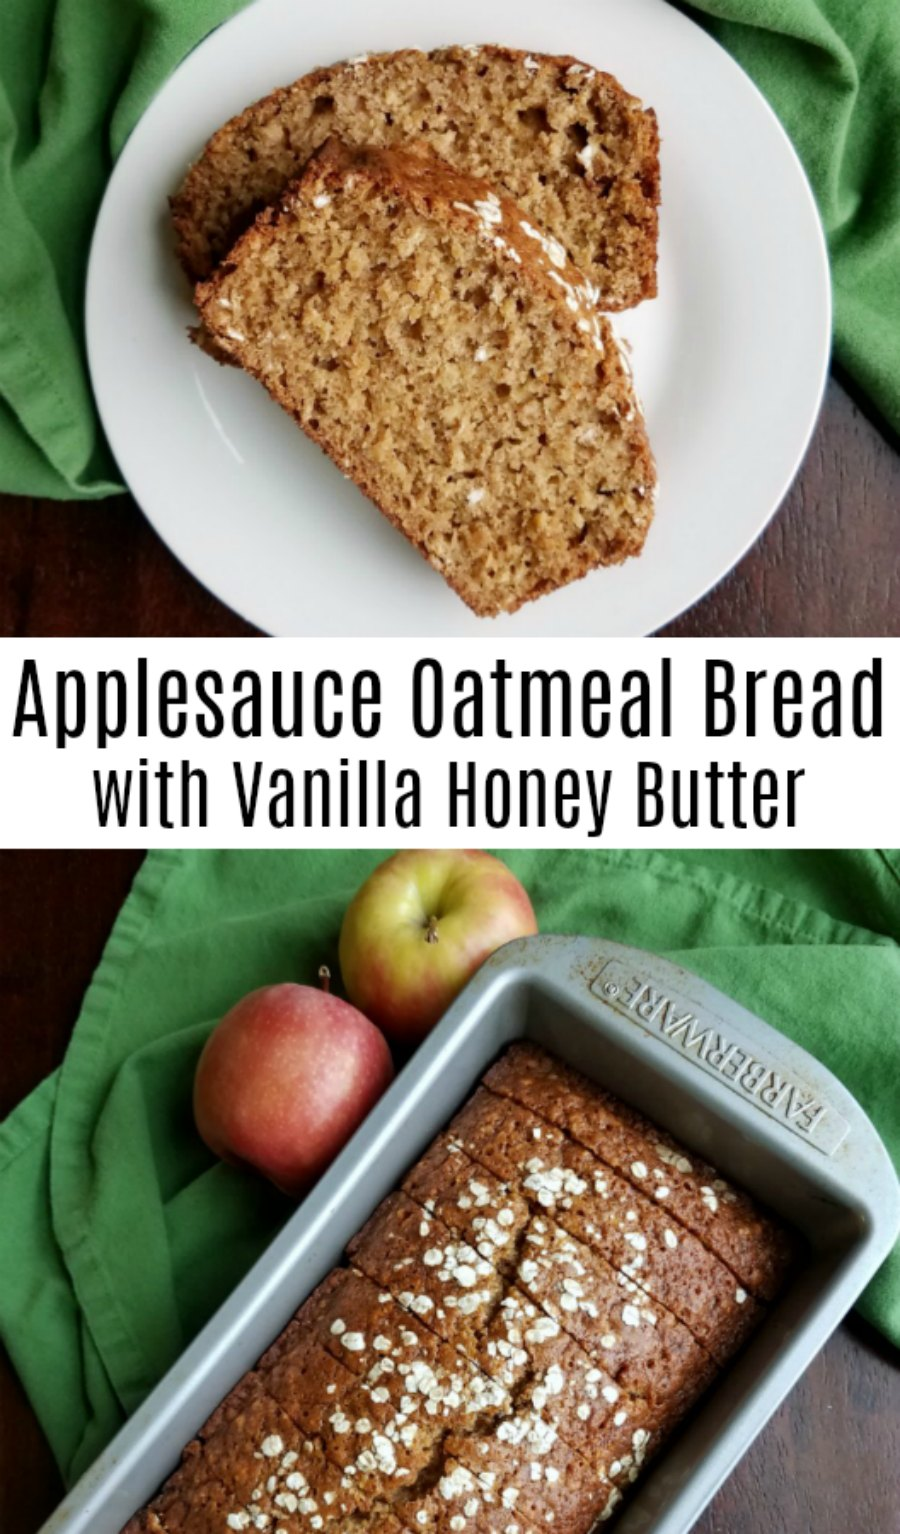 Applesauce oatmeal bread is a delicious sweet quick bread that's perfect for breakfast, tea time, snack or even a light dessert. The vanilla honey butter helps take to the next level of yumminess!